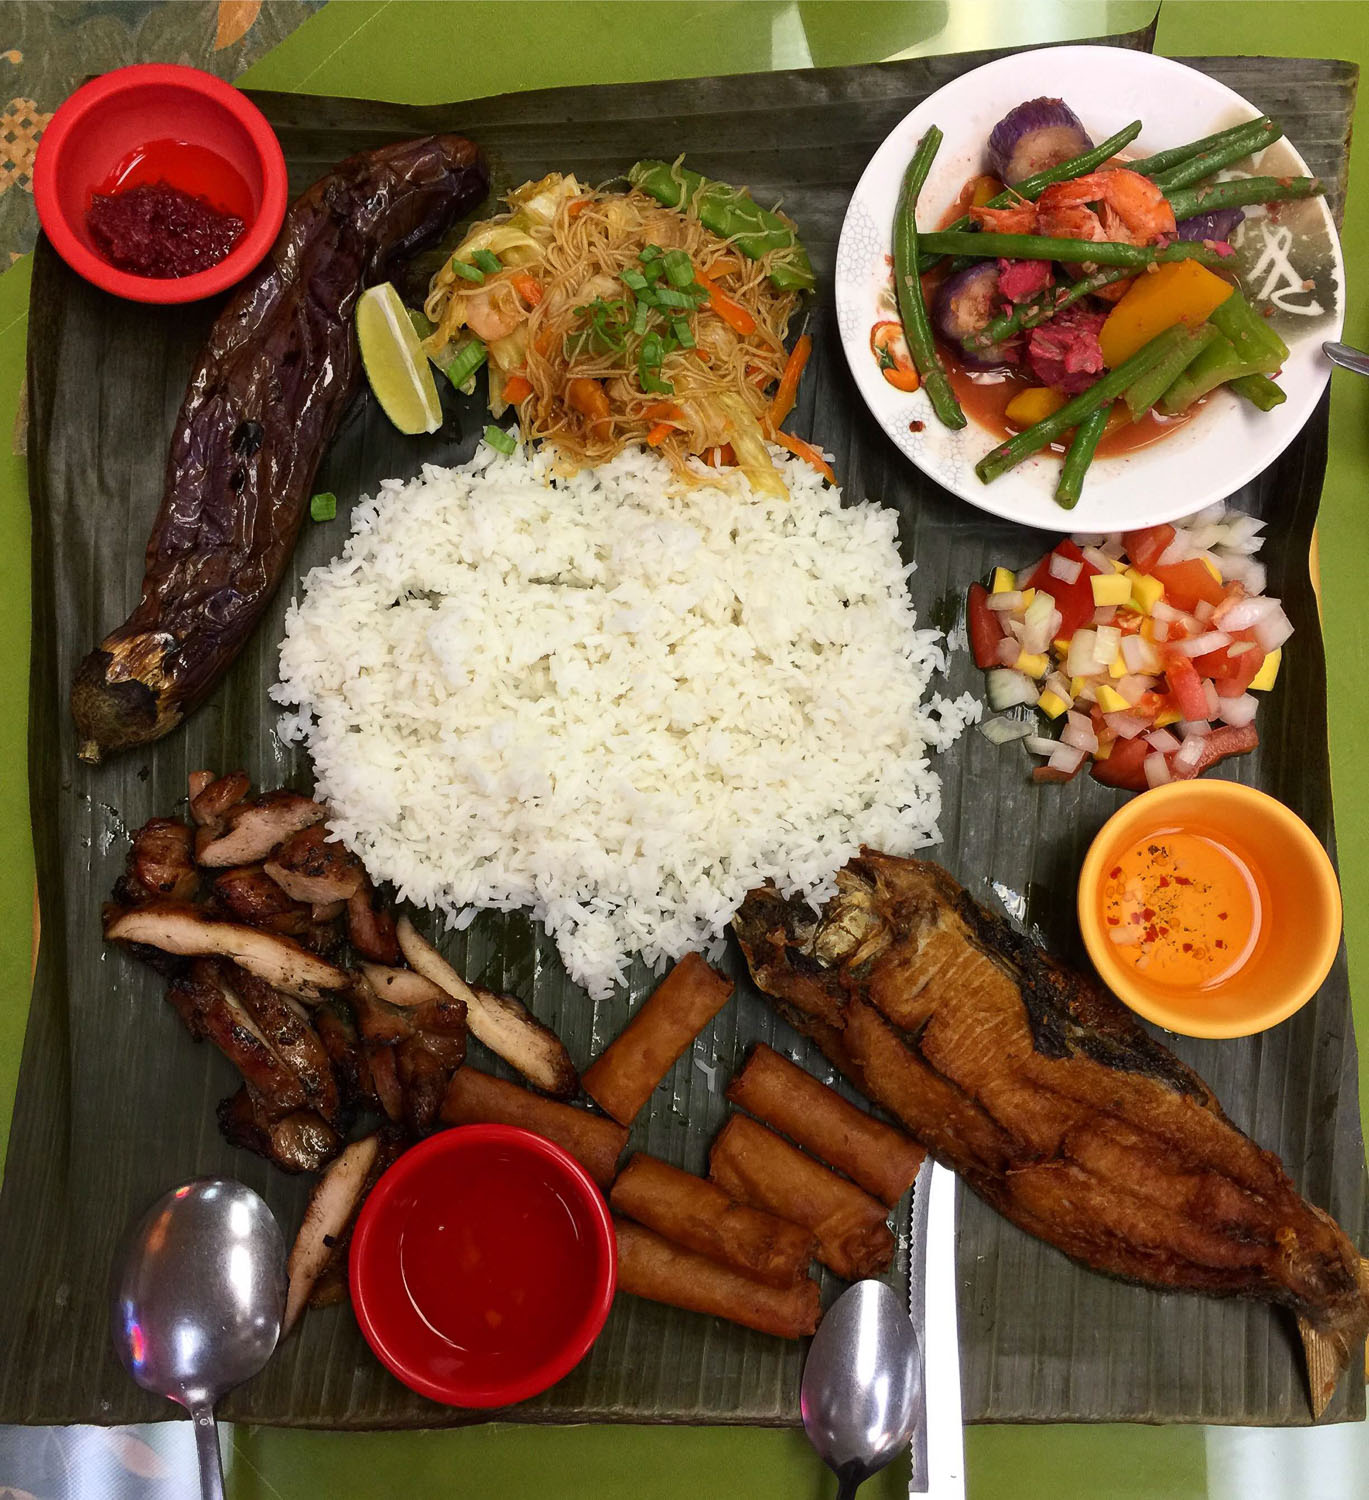 Ihawan's banana leaf feast for two.Pork BBQ, milkfish, grilled eggplant, shanghai noodles, spring rolls and more. Grab a handful and shove it in your face!